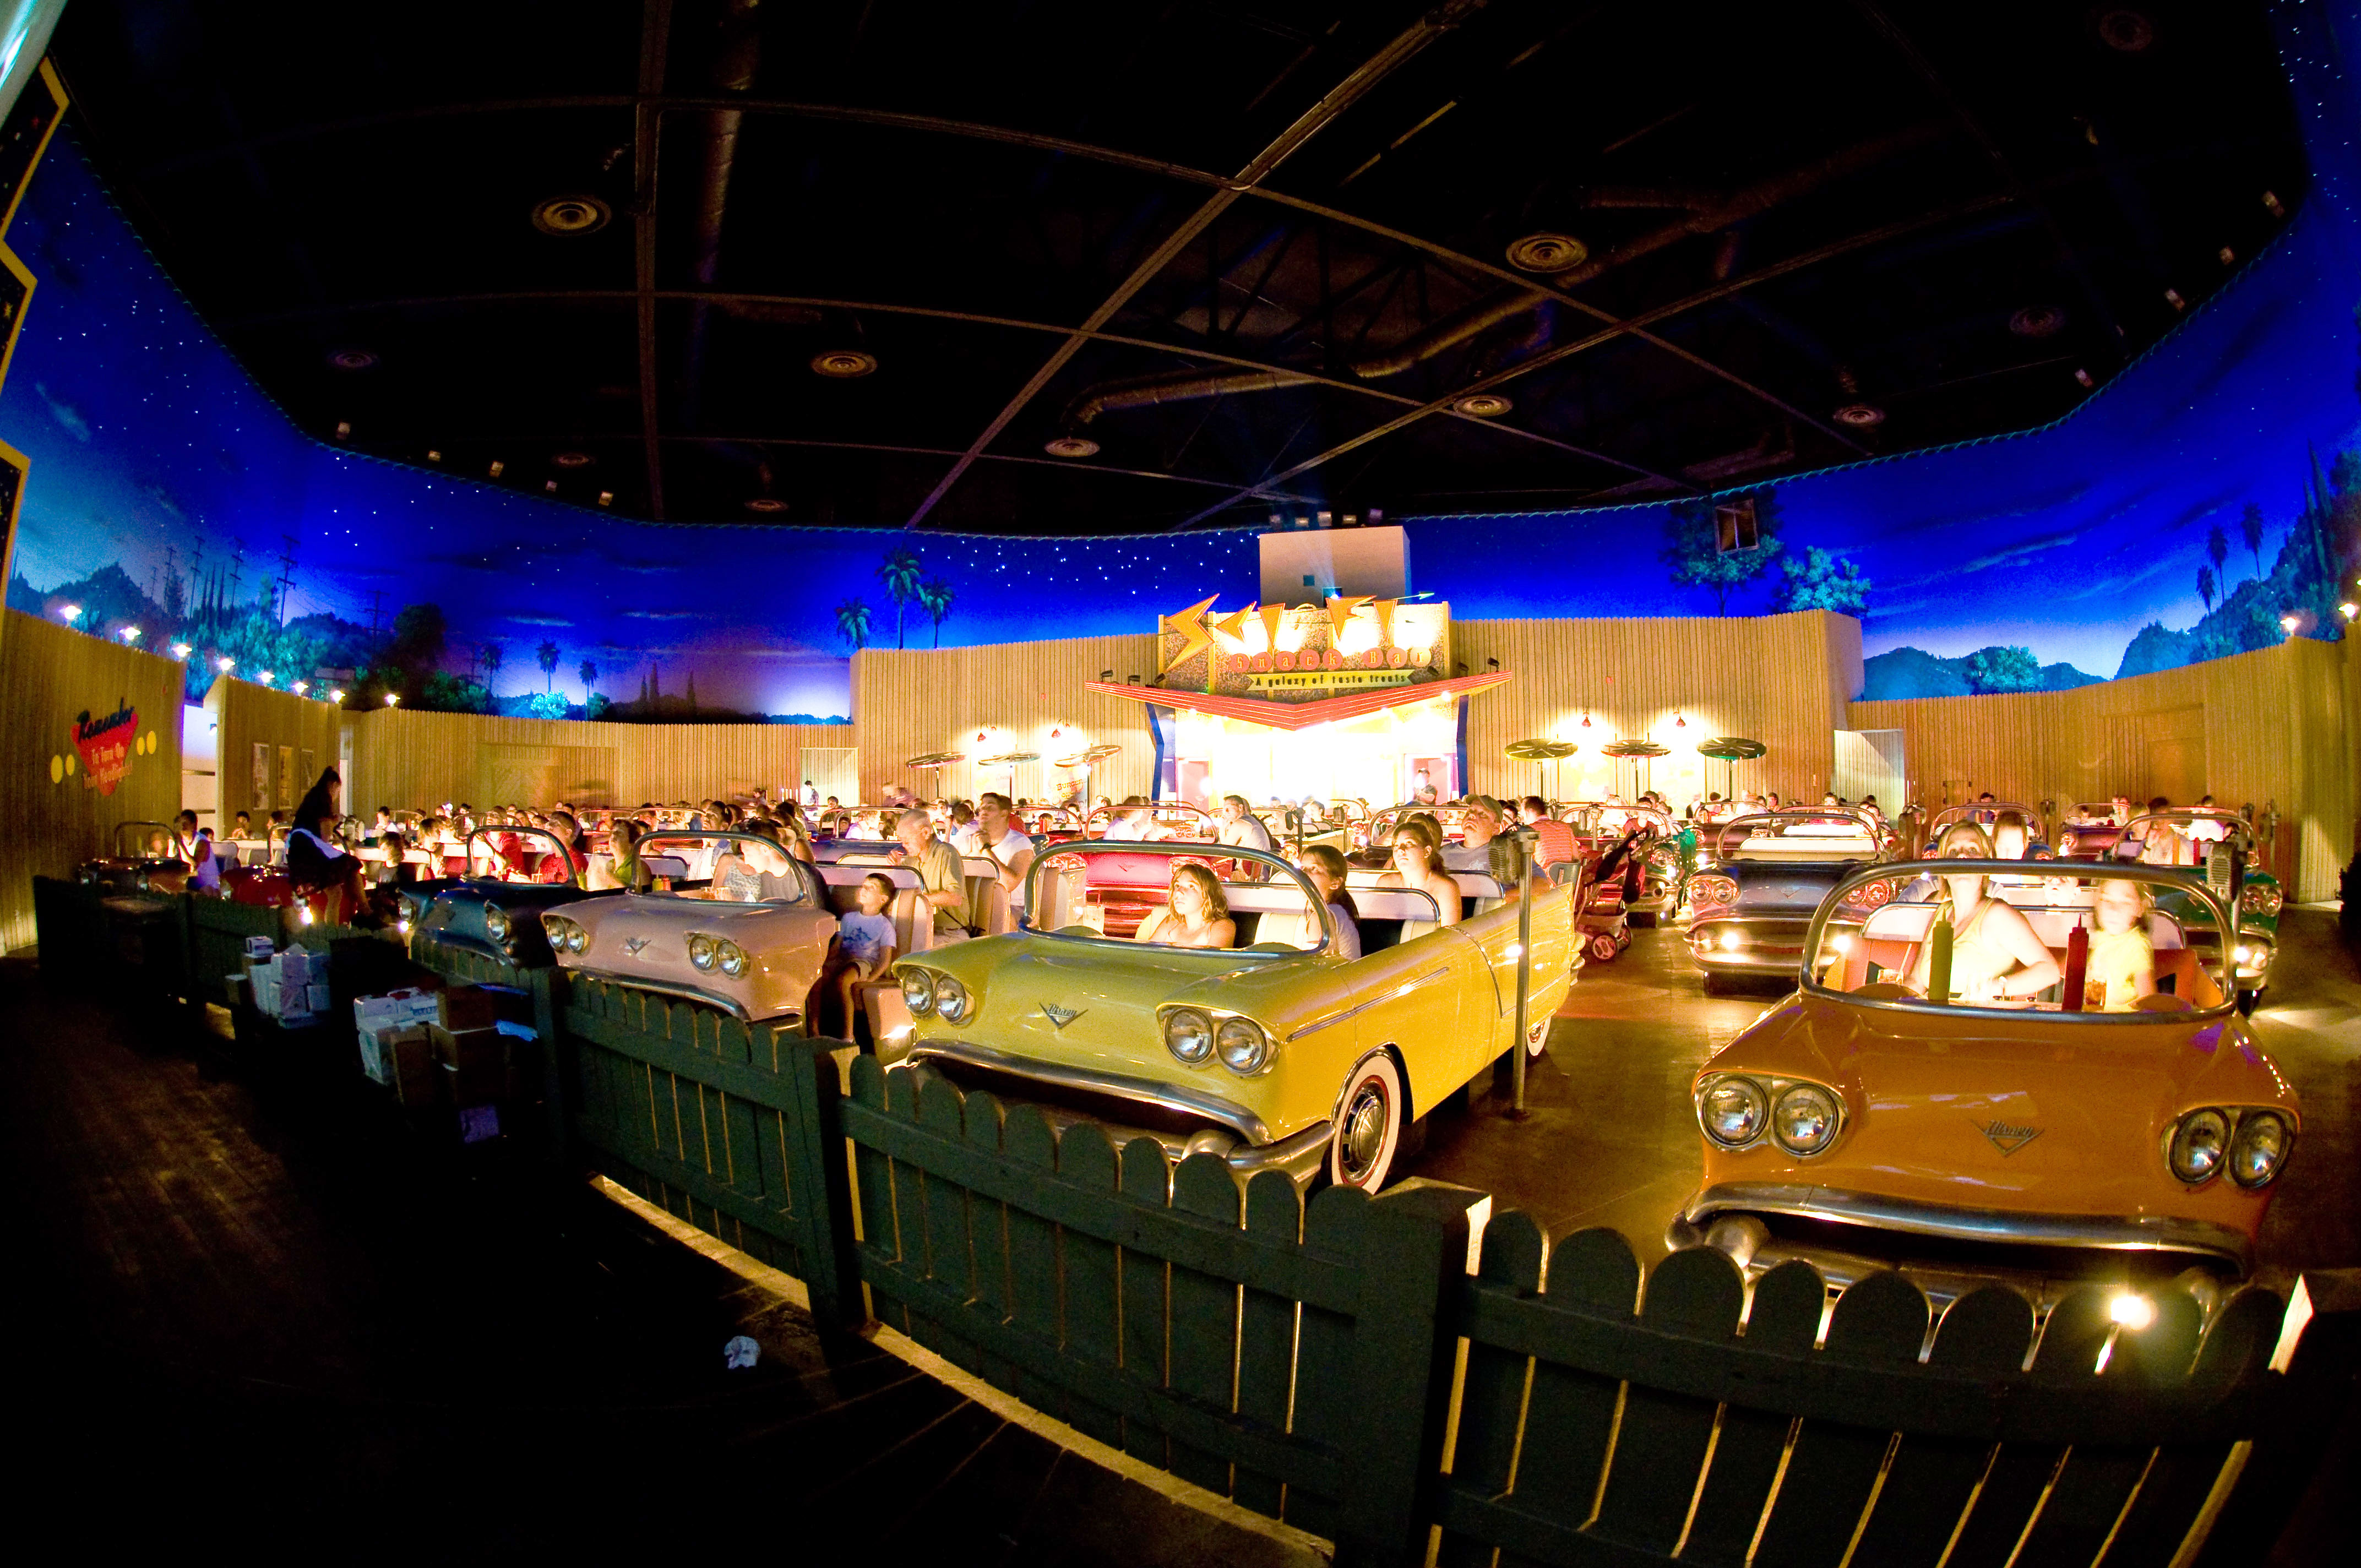 Sci-fi Dine-in Theater (Disney's Hollywood Studios, USA)